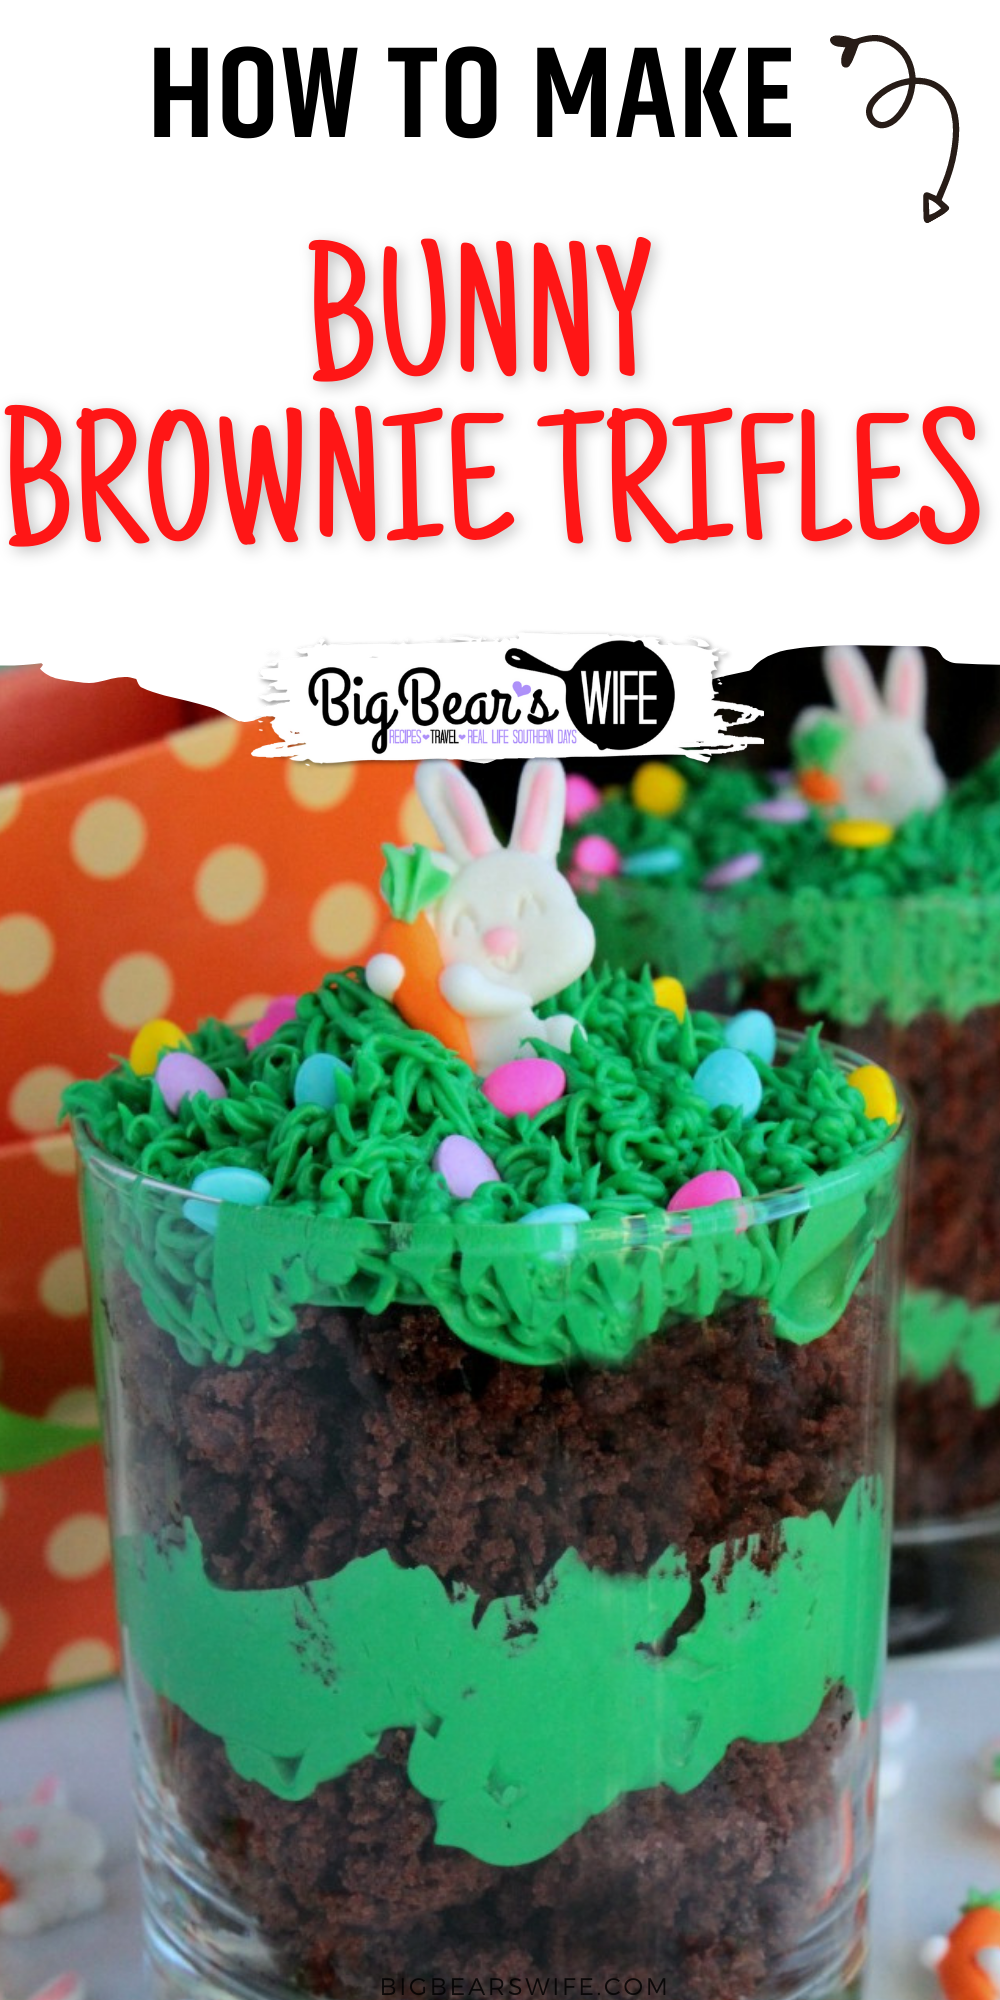 Super easy brownie trifles with cute little sugar bunnies and Easter eggs hidden in the tall grass icing.    via @bigbearswife